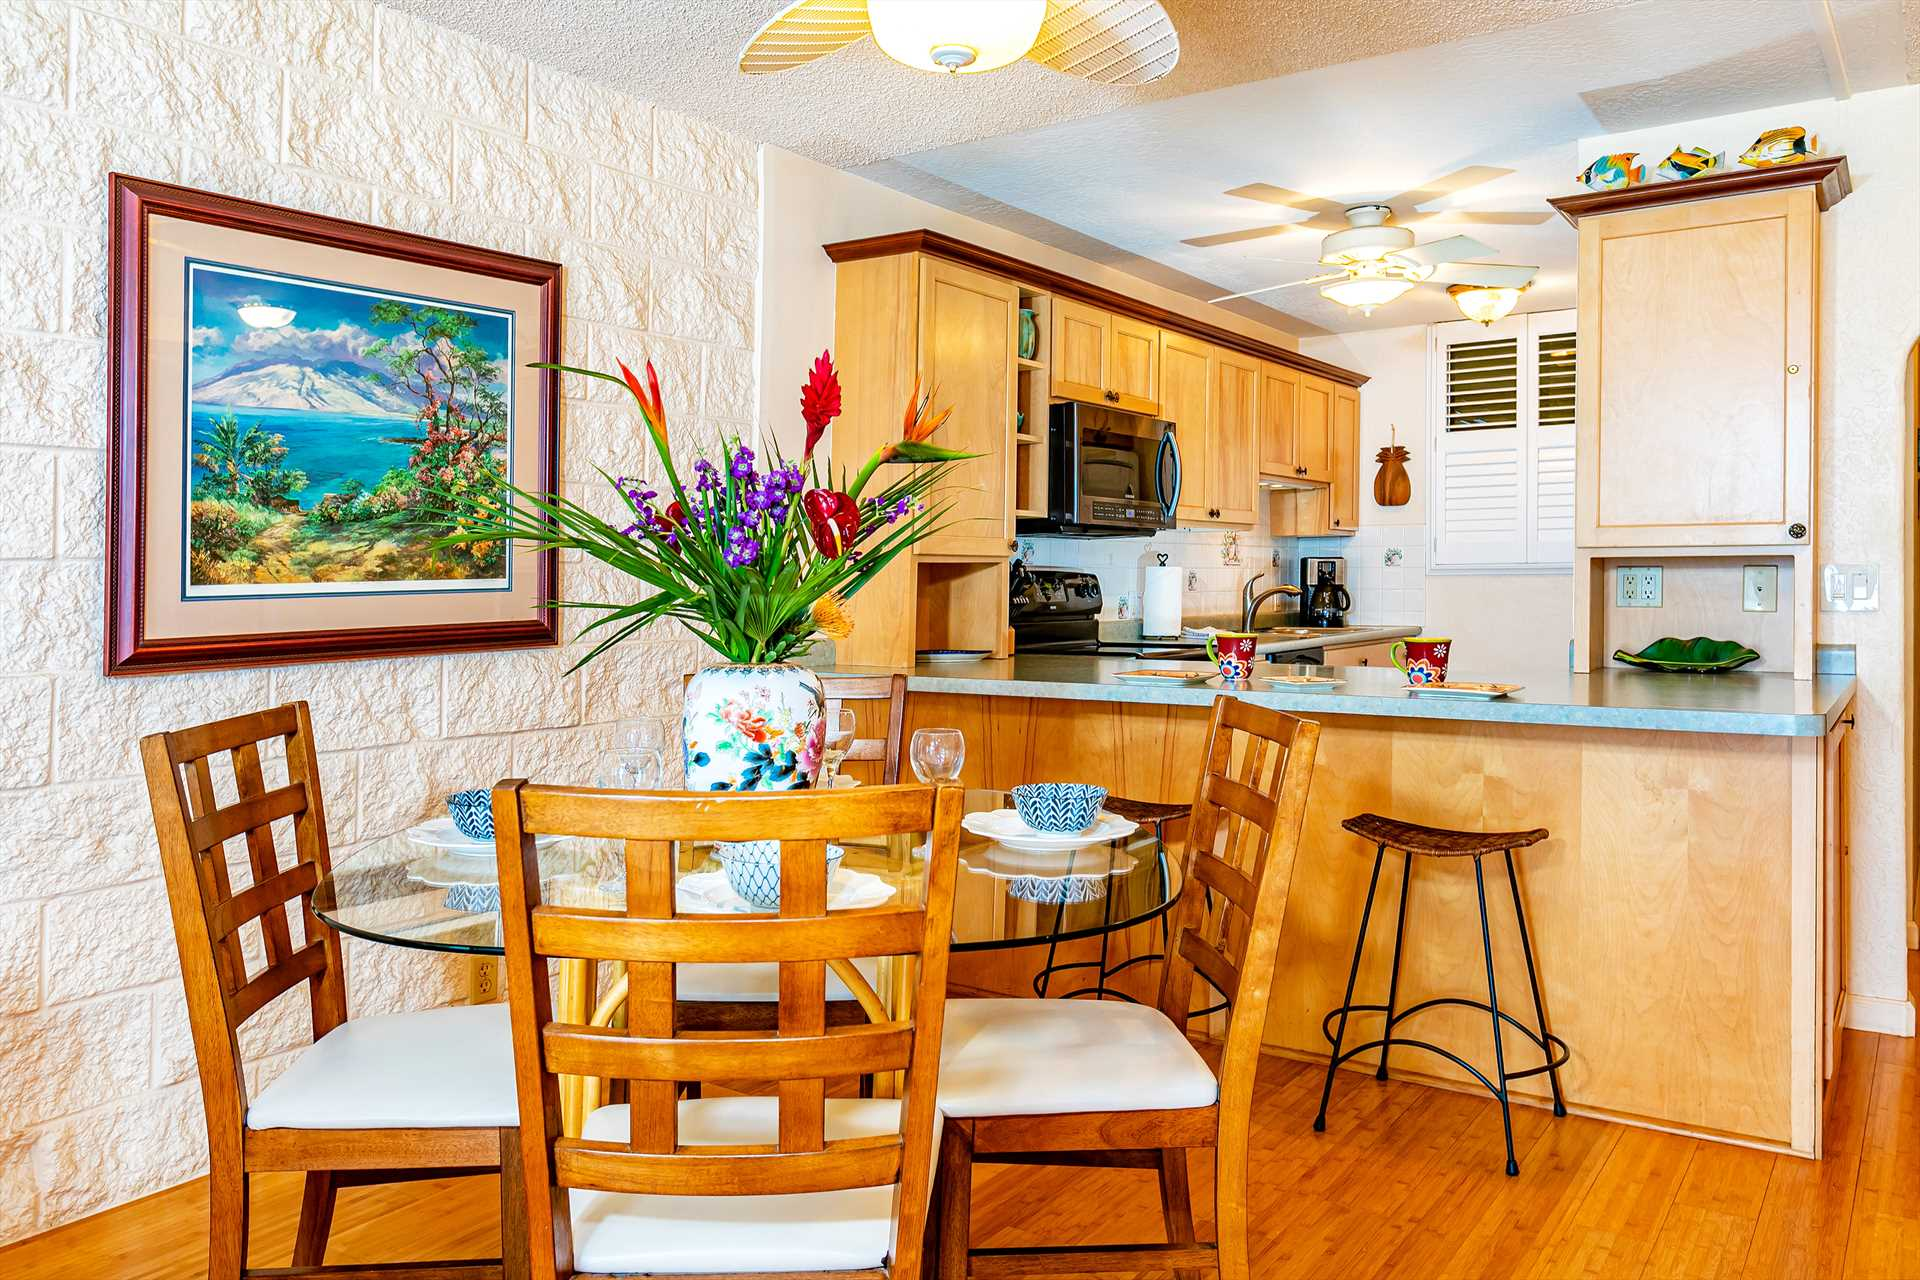 Enjoy great views of the ocean, islands and mountain while h